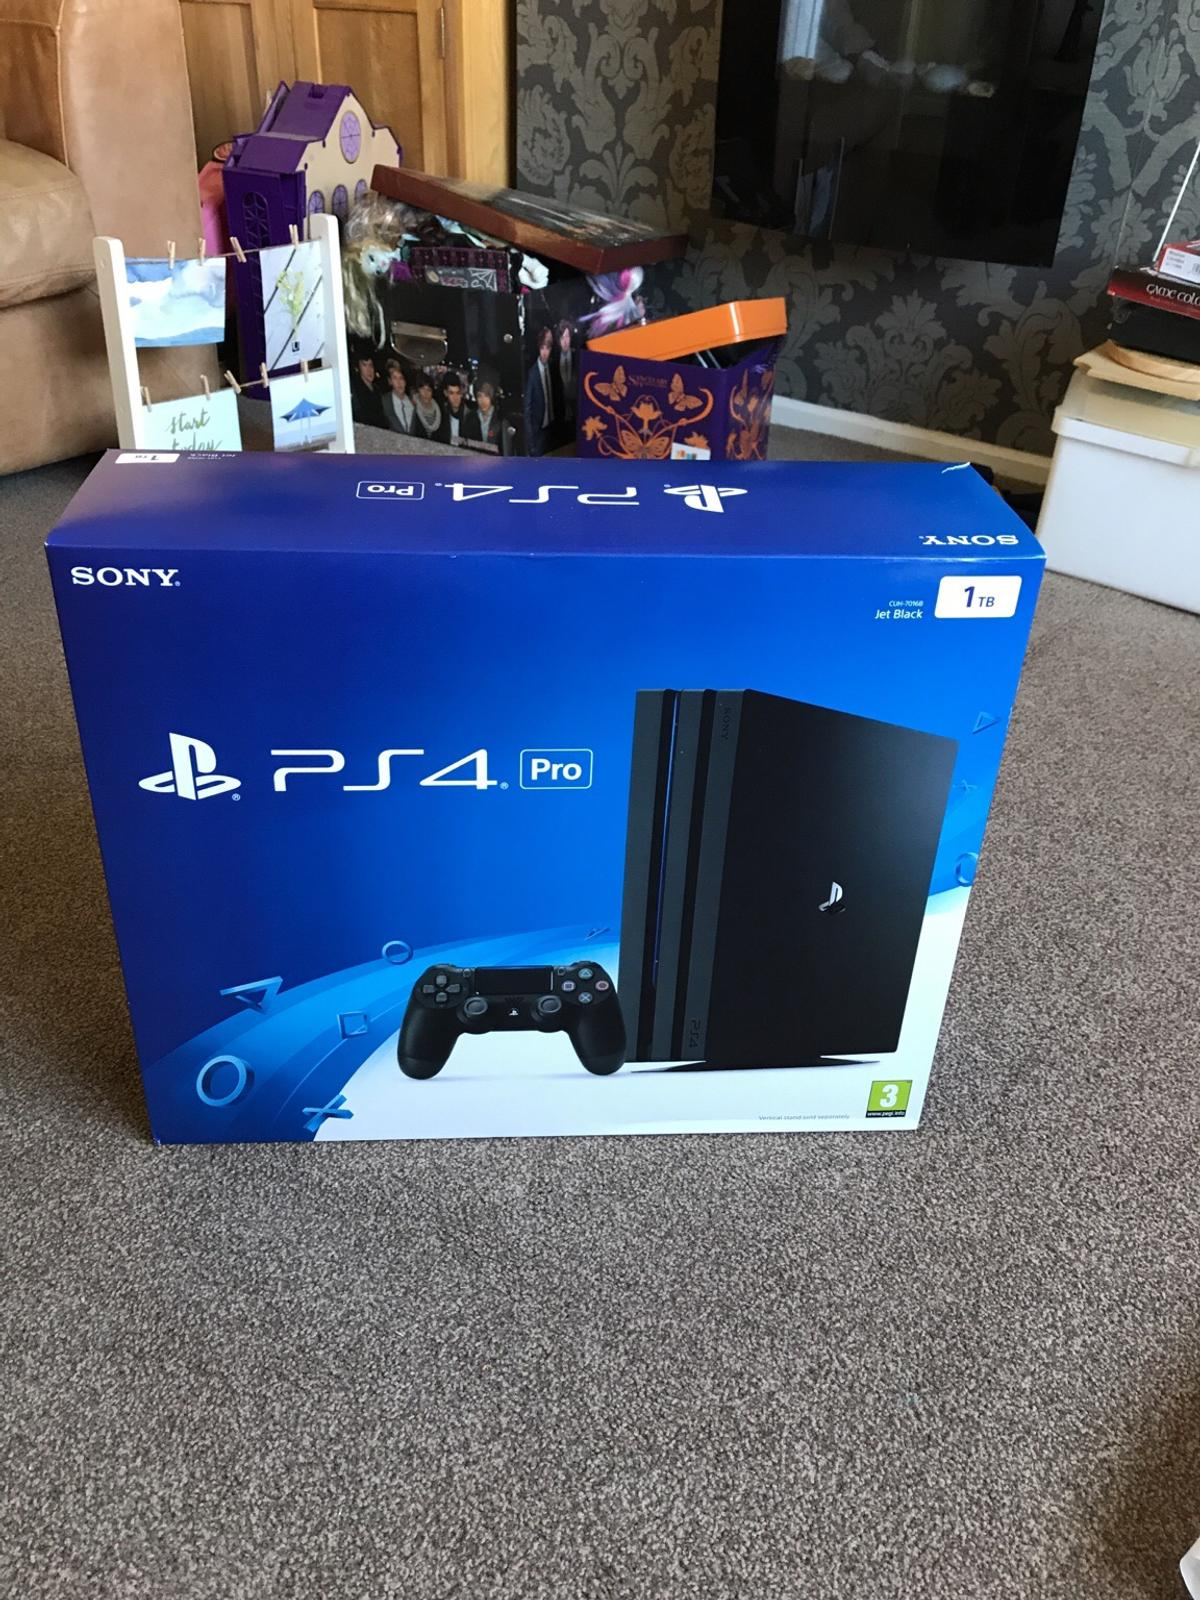 PS4 Pro 1TB - PlayStation 4 Pro in Elton for £280 00 for